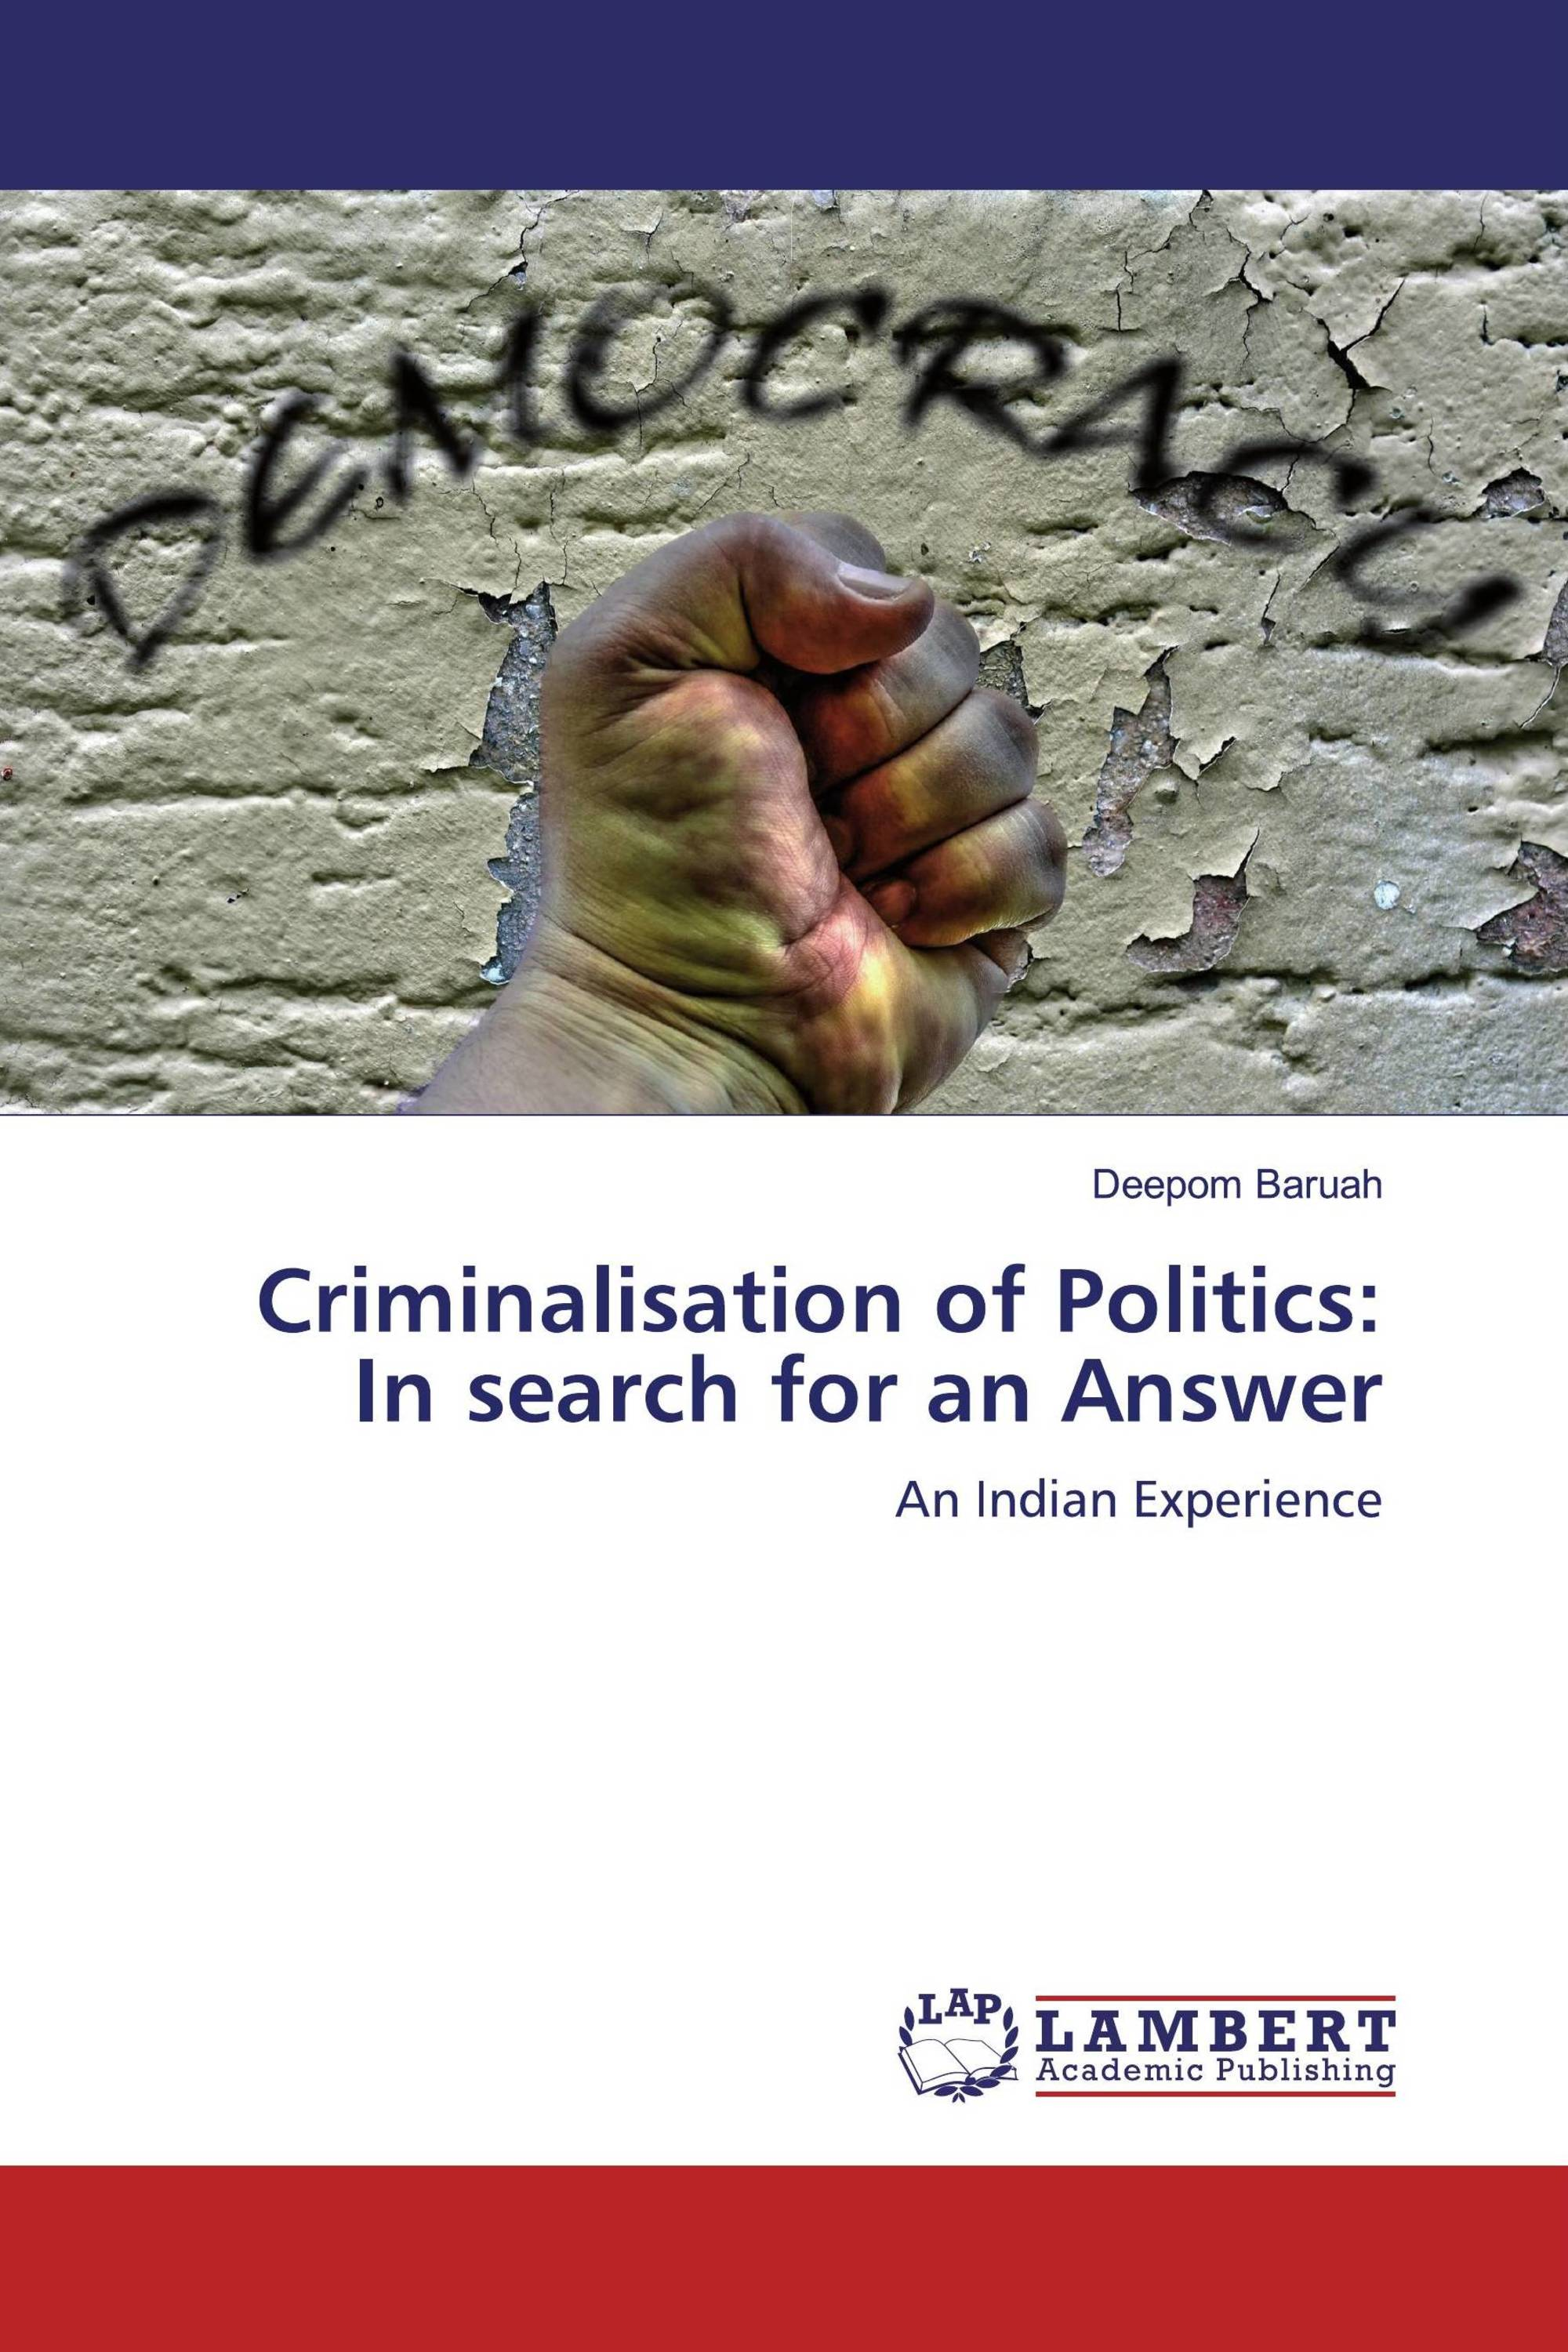 Criminalisation of Politics: In search for an Answer